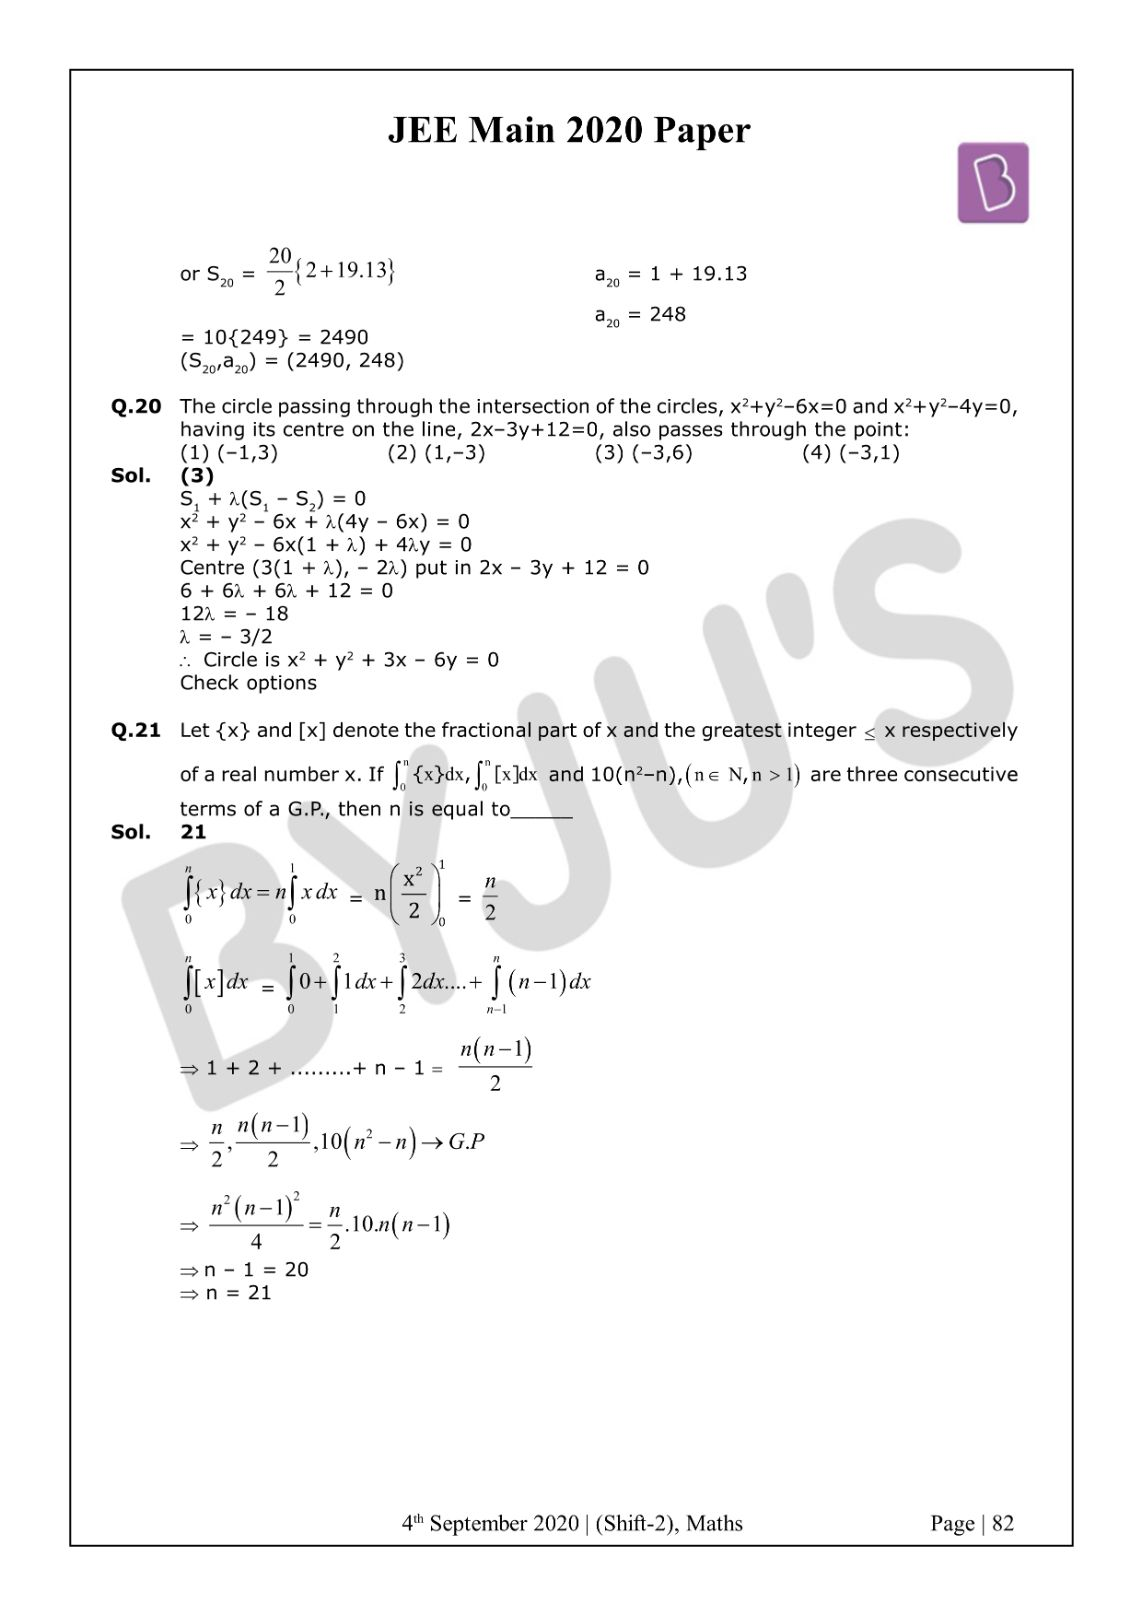 JEE Main 2020 Paper With Solutions Maths Shift 2 (Sept 4